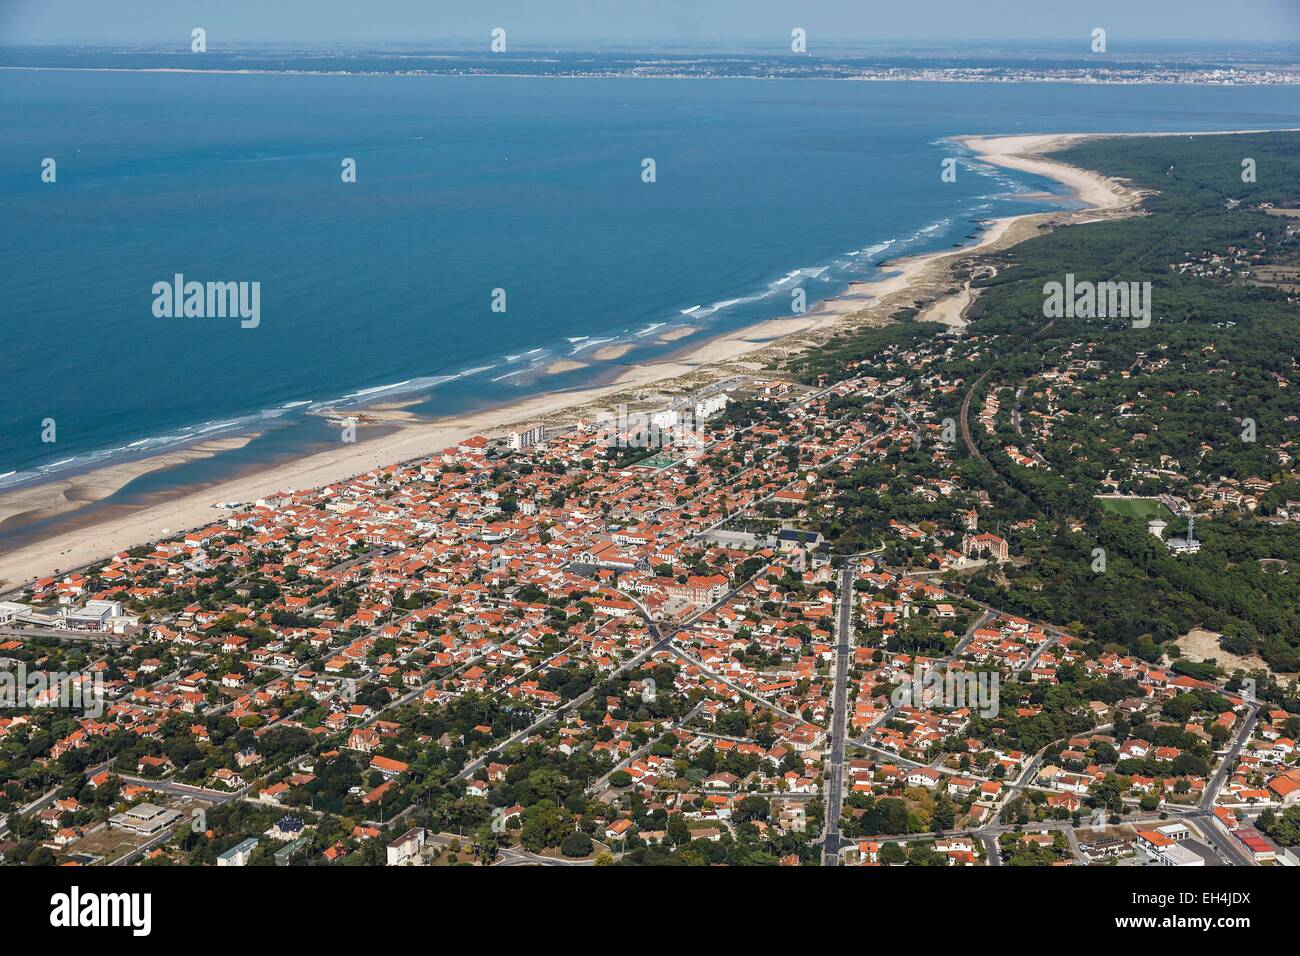 France, Gironde, Soulac sur Mer, the seaside resort and the coast to the Gironde estuary (aerial view) - Stock Image